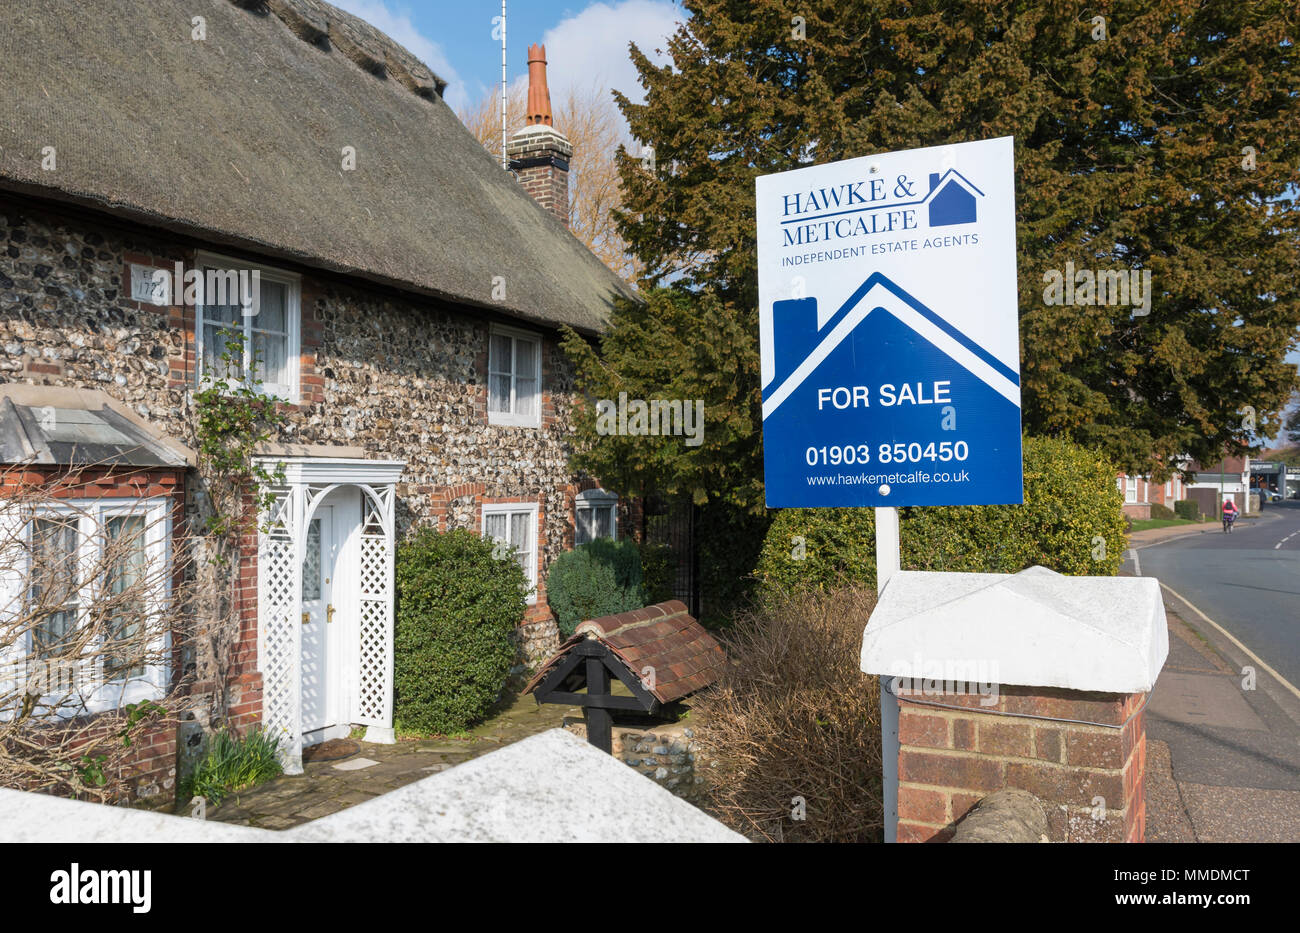 For sale sign from Hawke & Metcalfe estate agents by a cottage for sale in a village in England, UK. - Stock Image